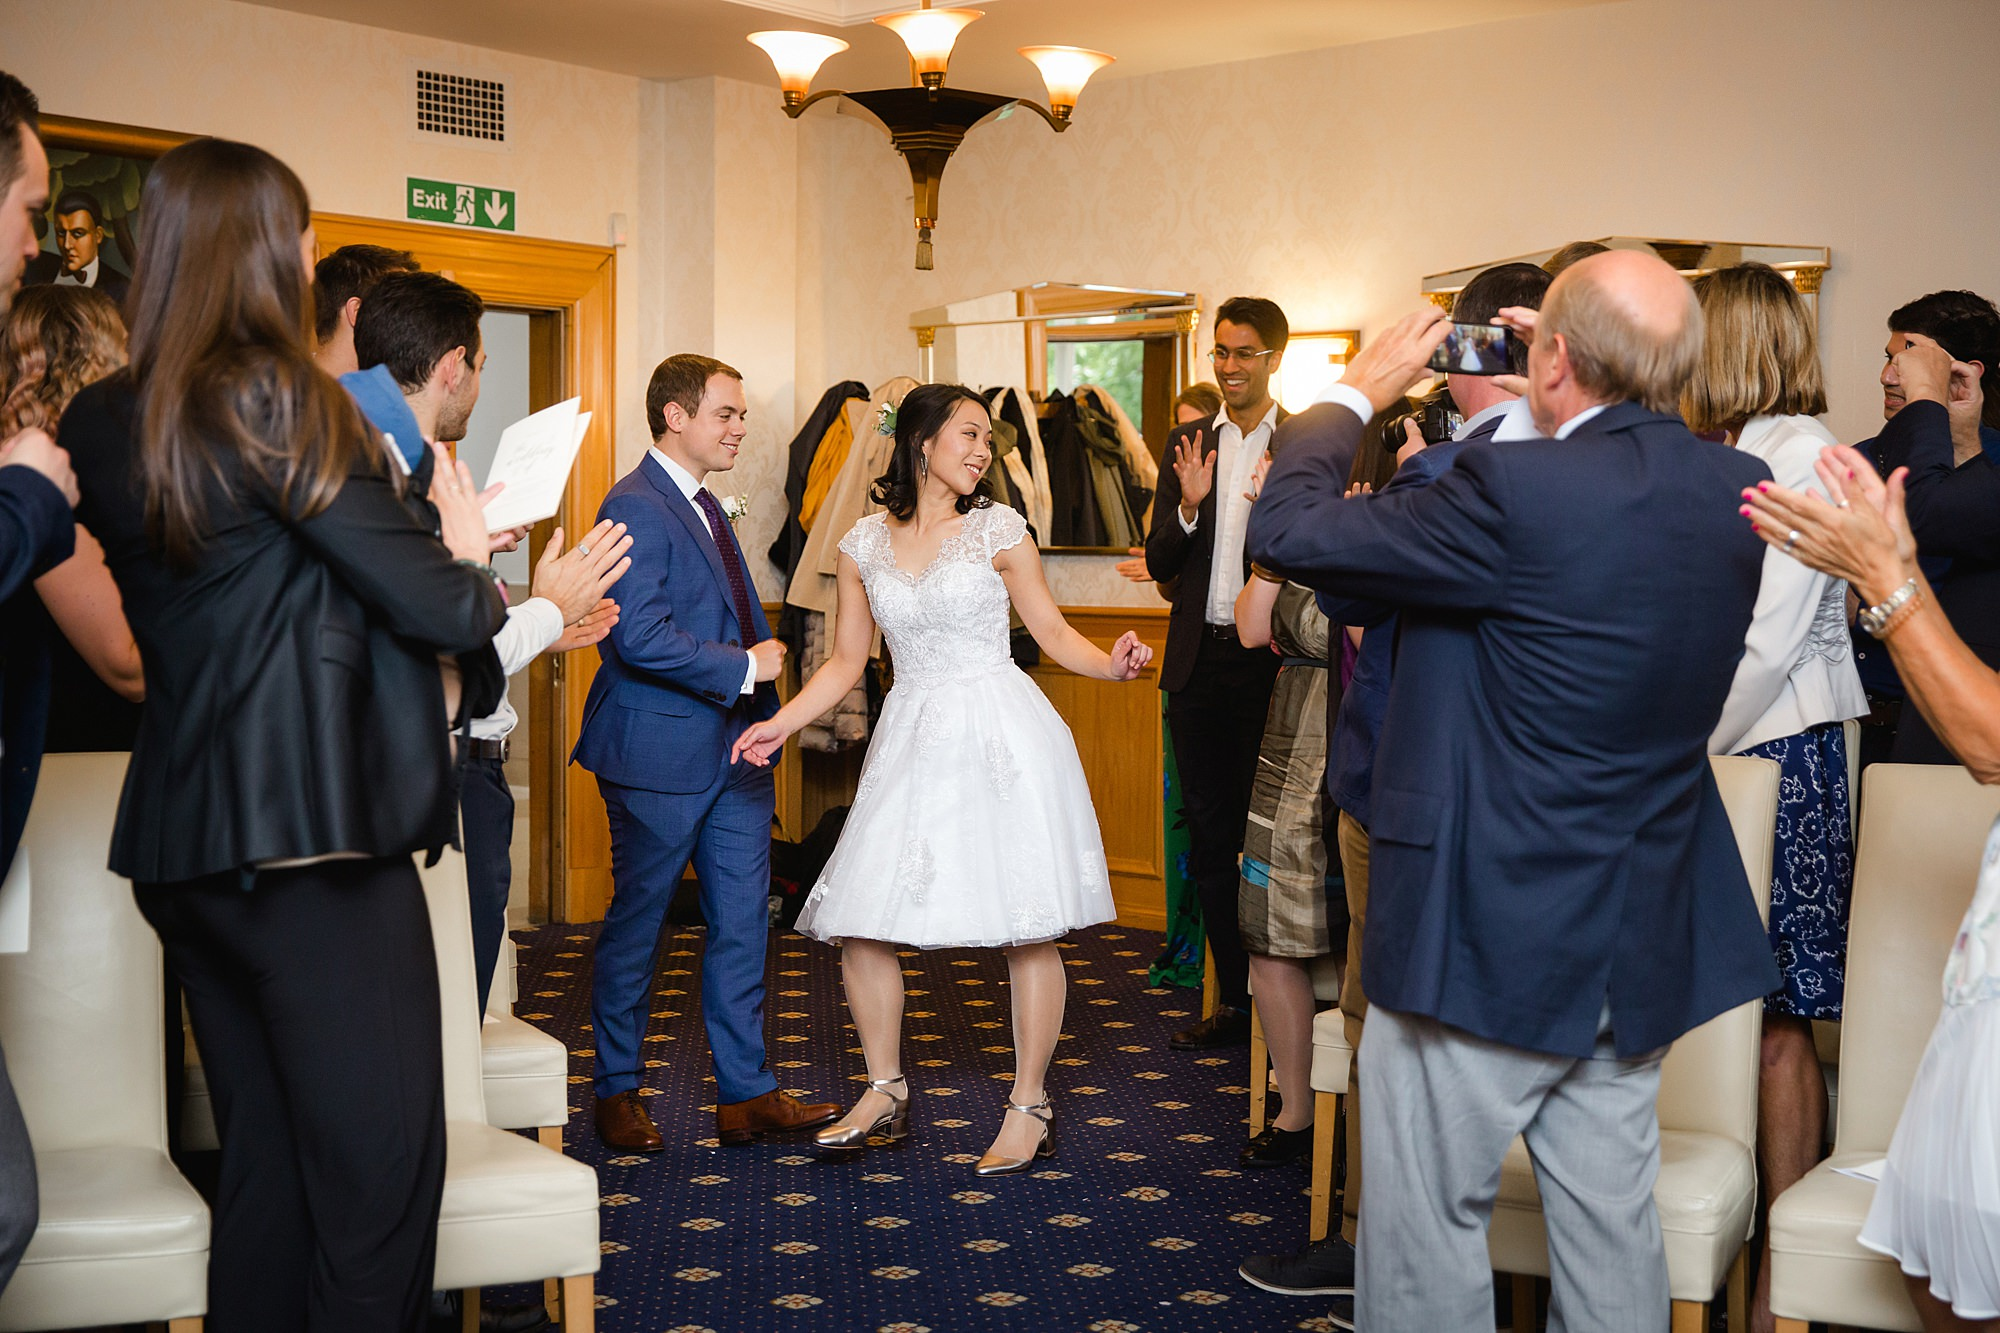 Wandsworth pub wedding bride and groom dance down the aisle